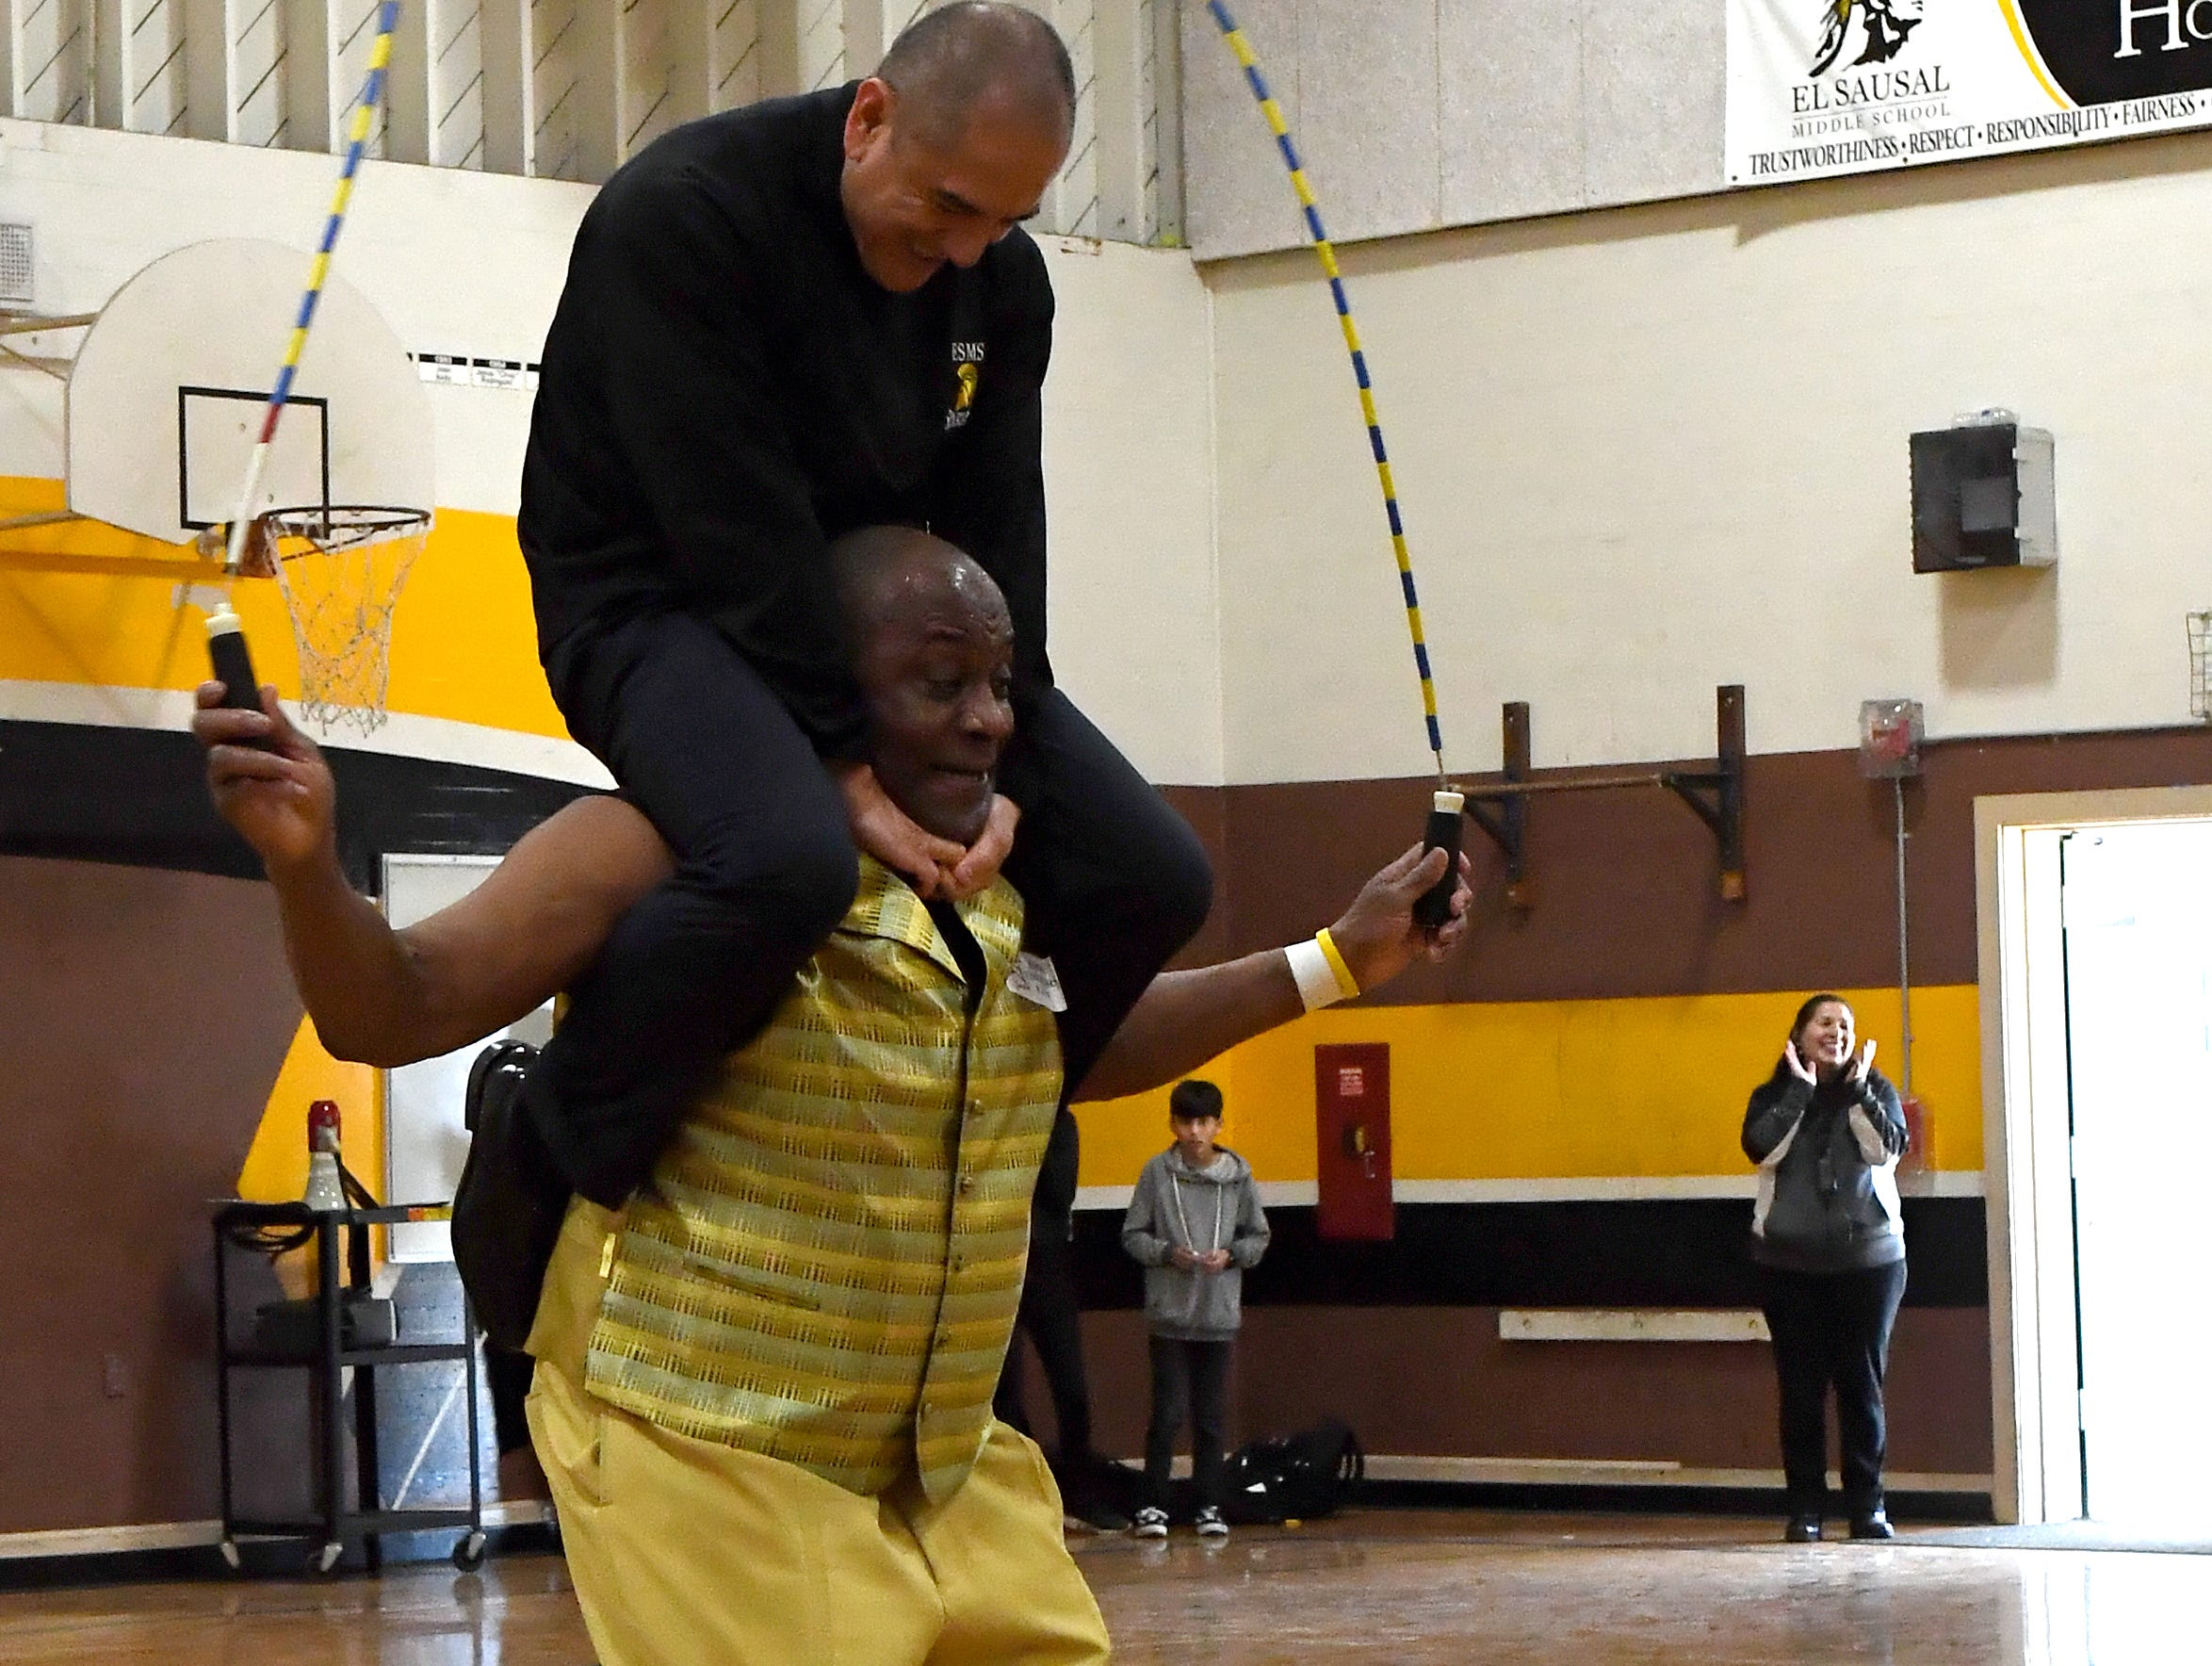 El Sausal Middle School Principal Francisco Huerta sits on James Brewster's shoulders during his visit to the school on Feb. 21, 2019.